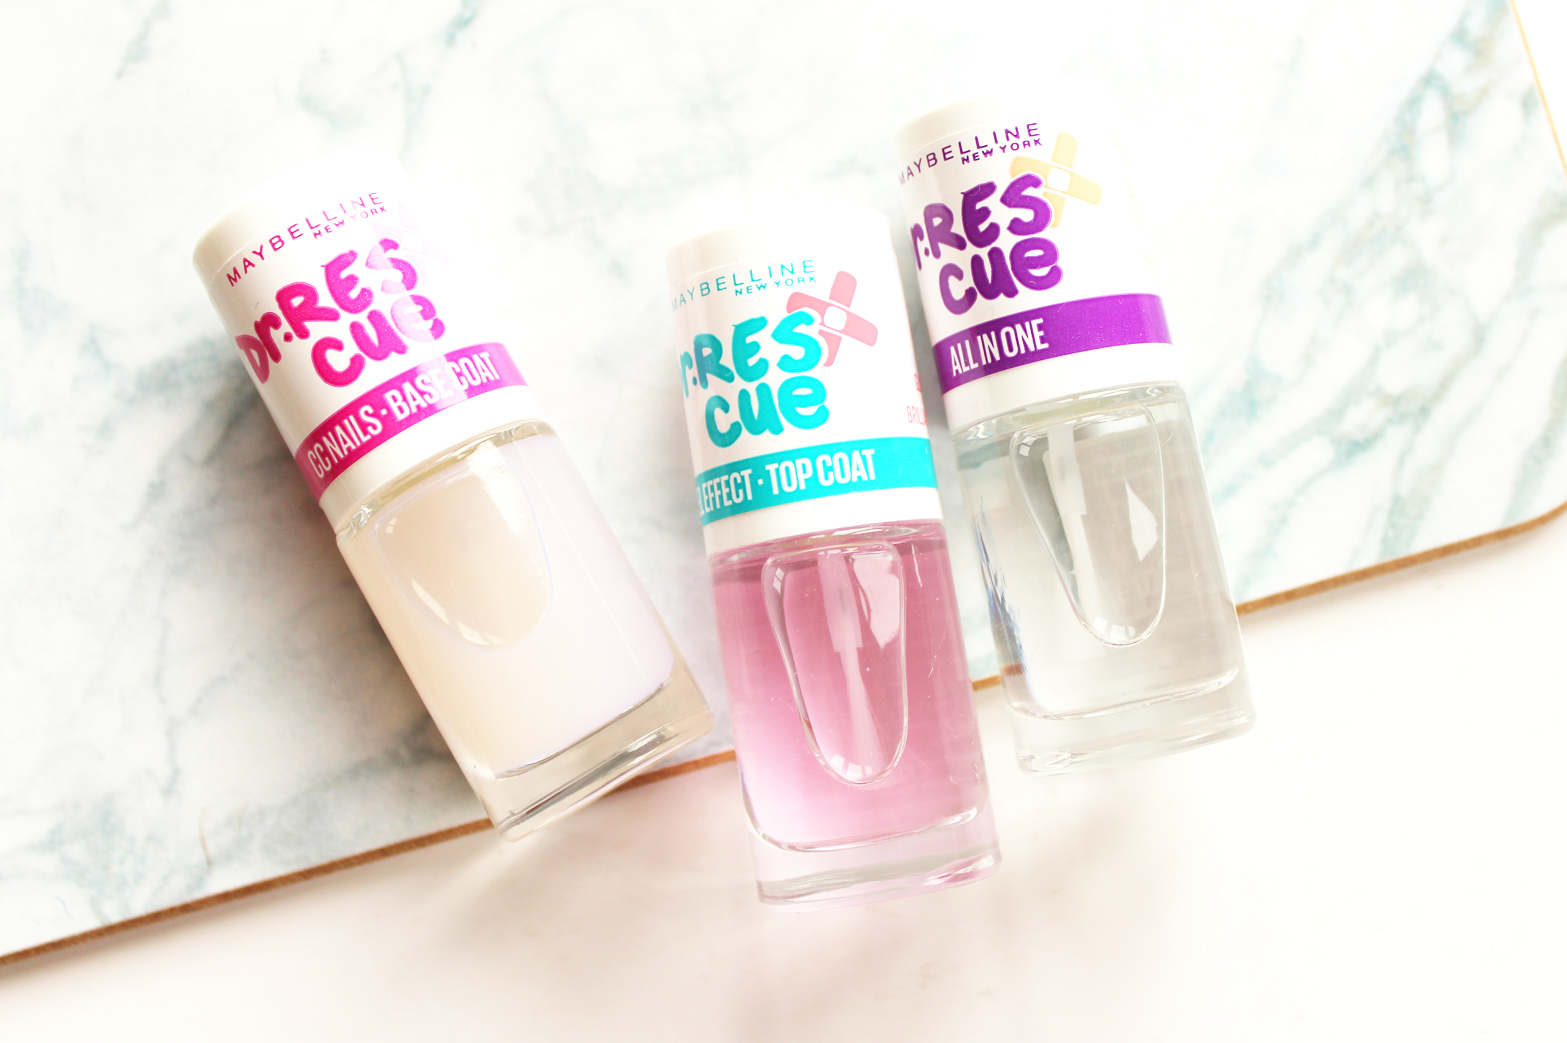 MAYBELLINE | New Releases to NZ - Dr. Rescue Nail Care - CassandraMyee